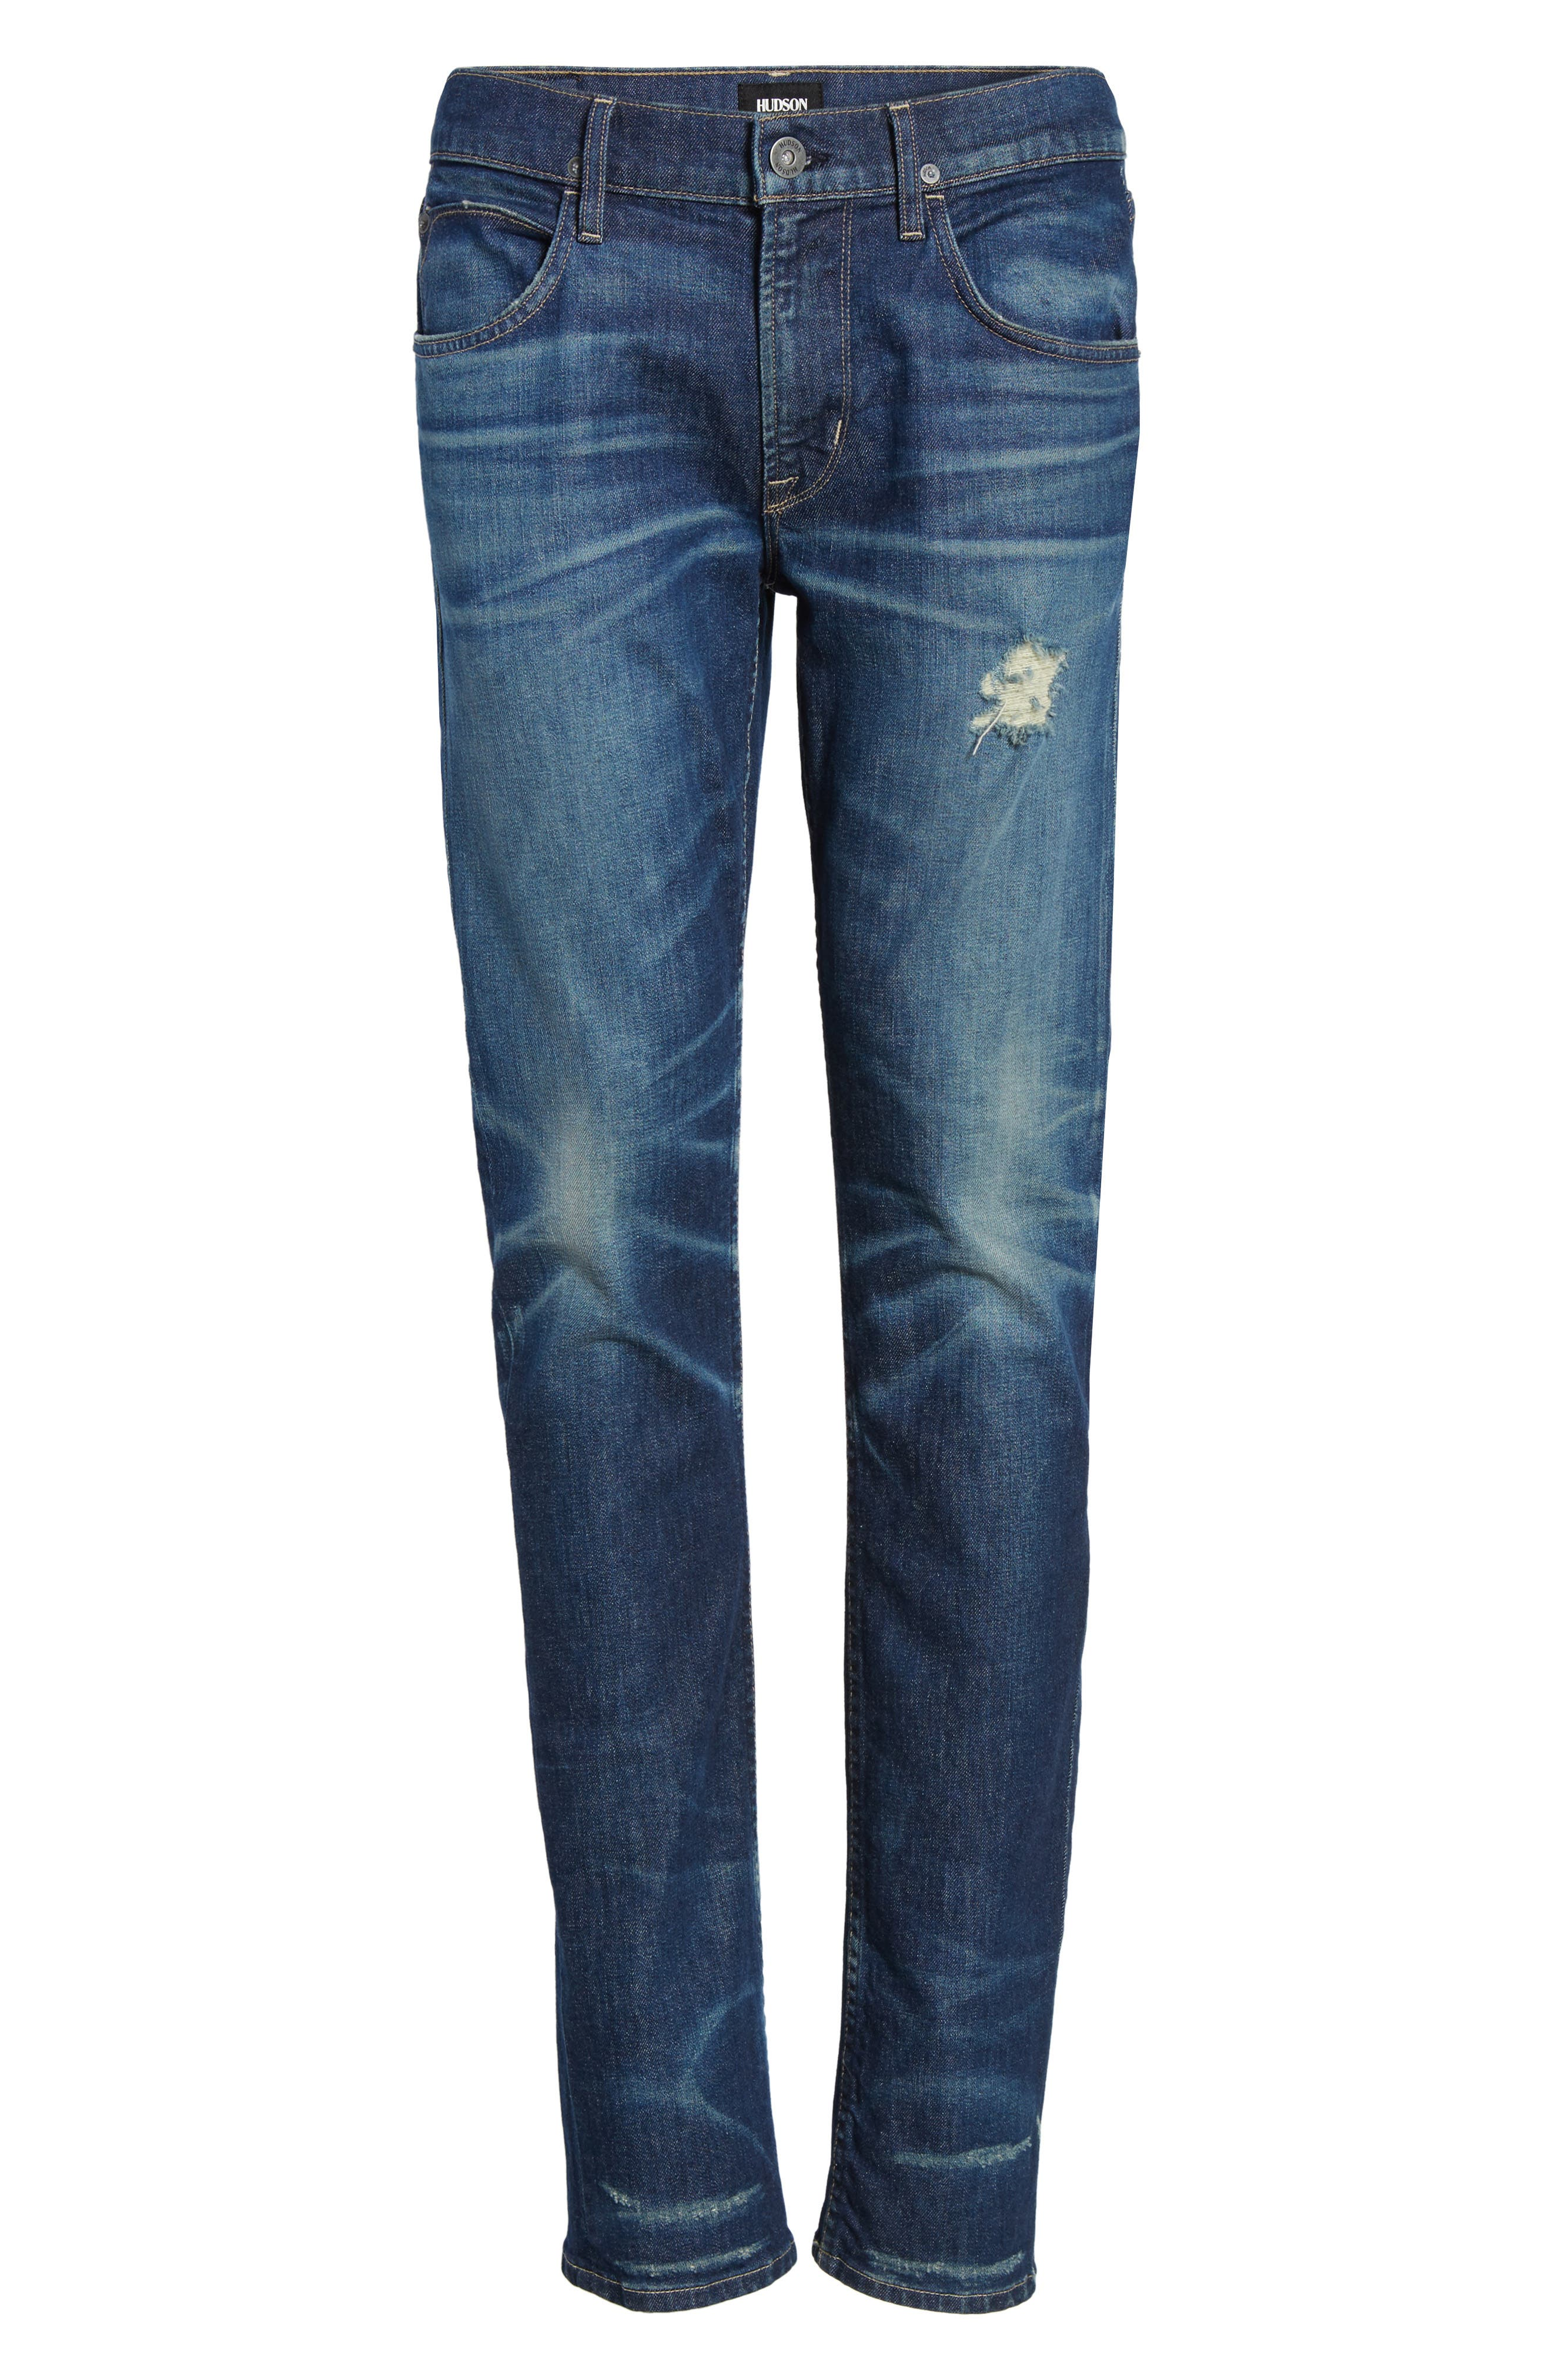 Blake Slim Fit Jeans,                             Alternate thumbnail 6, color,                             Operation